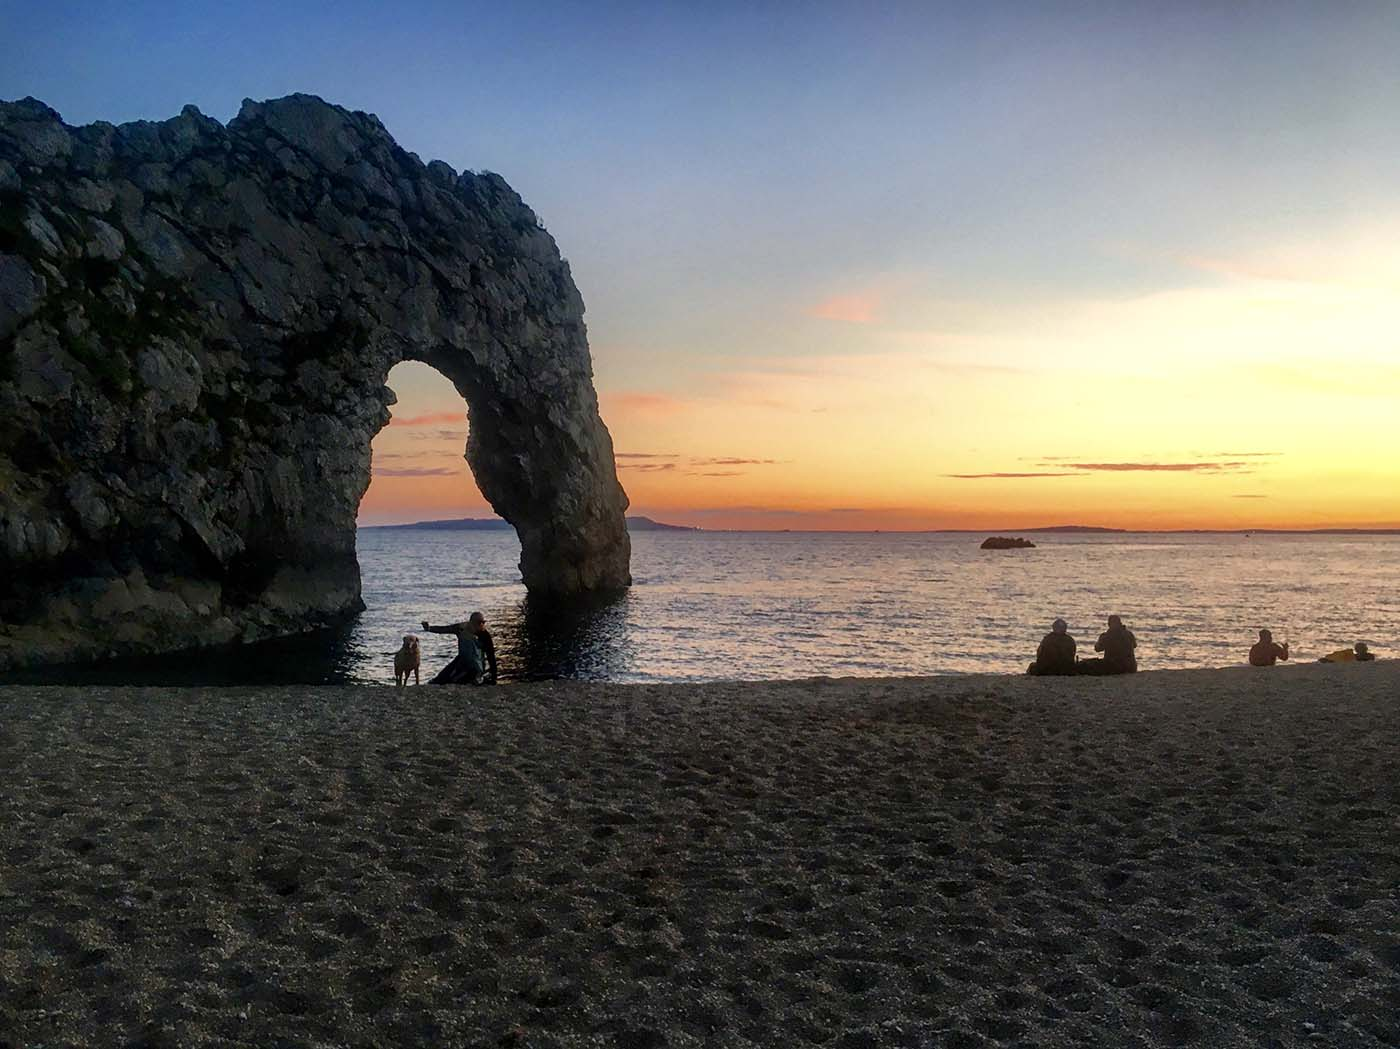 Photo of a beach at sunset with some people and a dog enjoying the view.